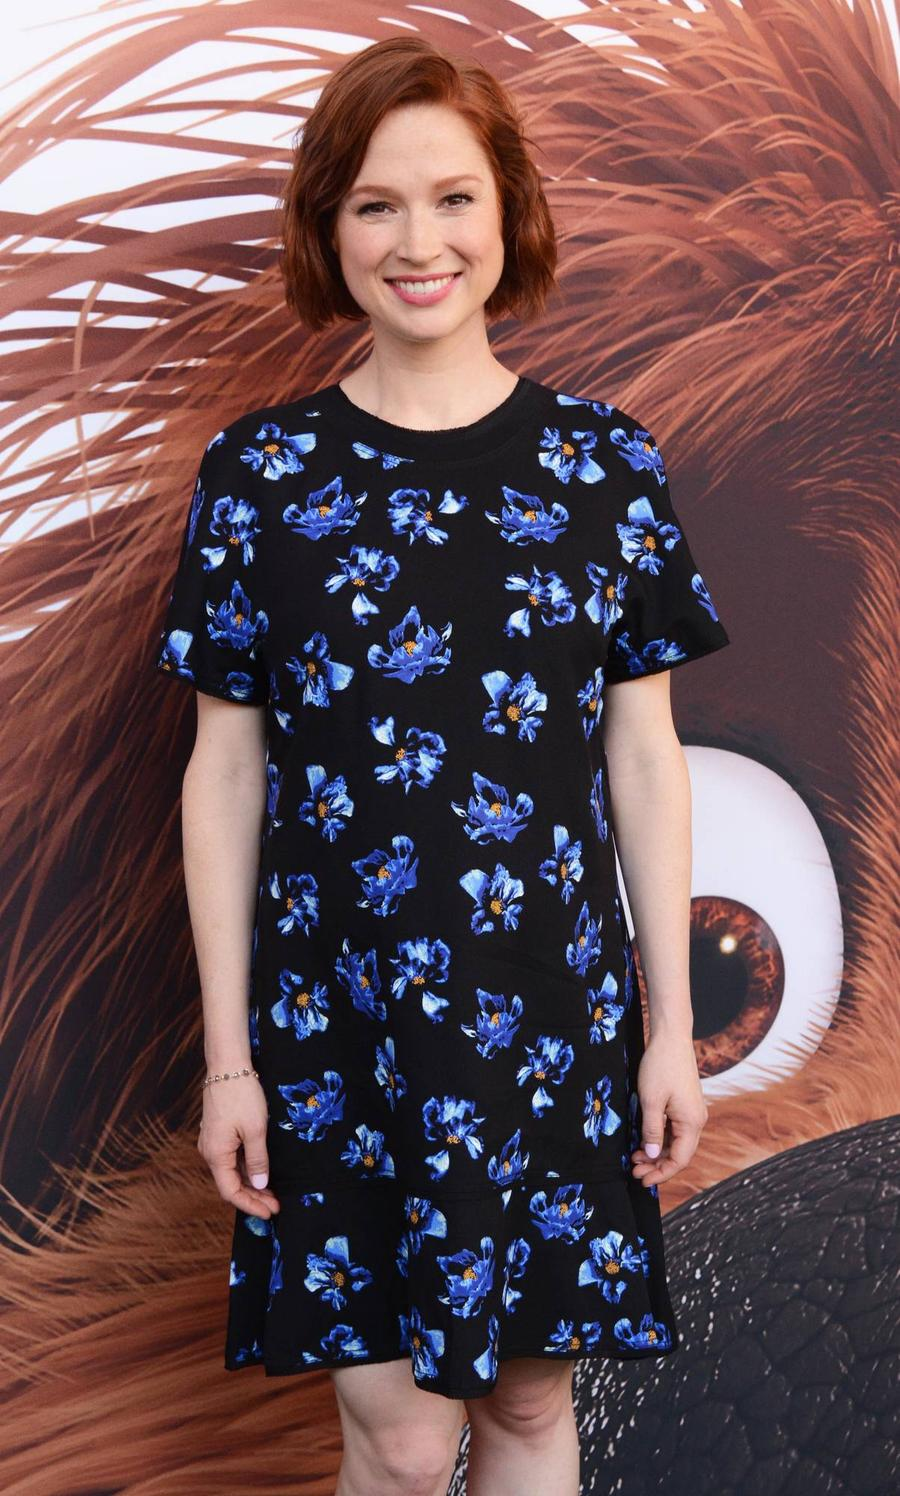 Pregnant Ellie Kemper Couldn't Stomach Eating Healthy Sardines